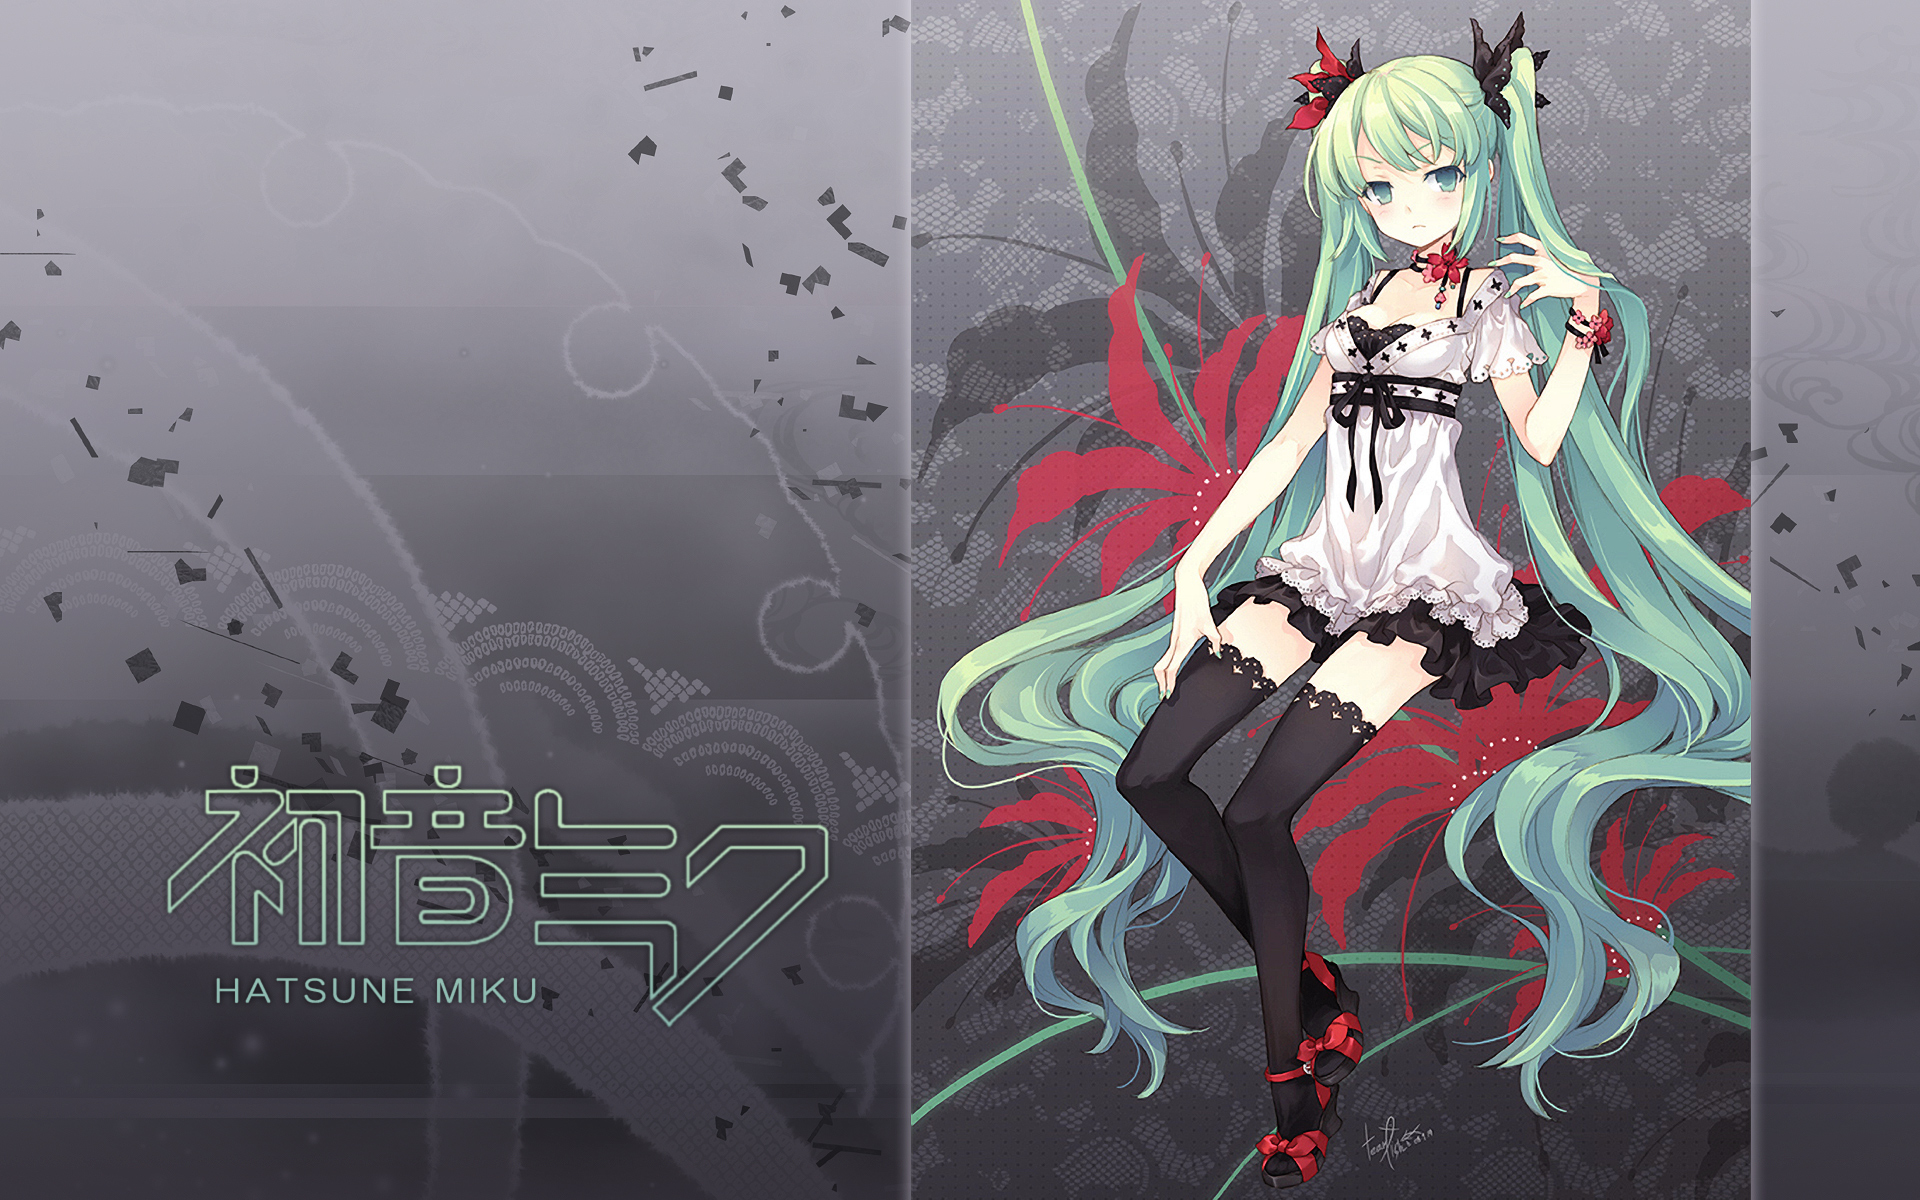 images, vocaloid, world, community, thighhighs, tearfish, profile